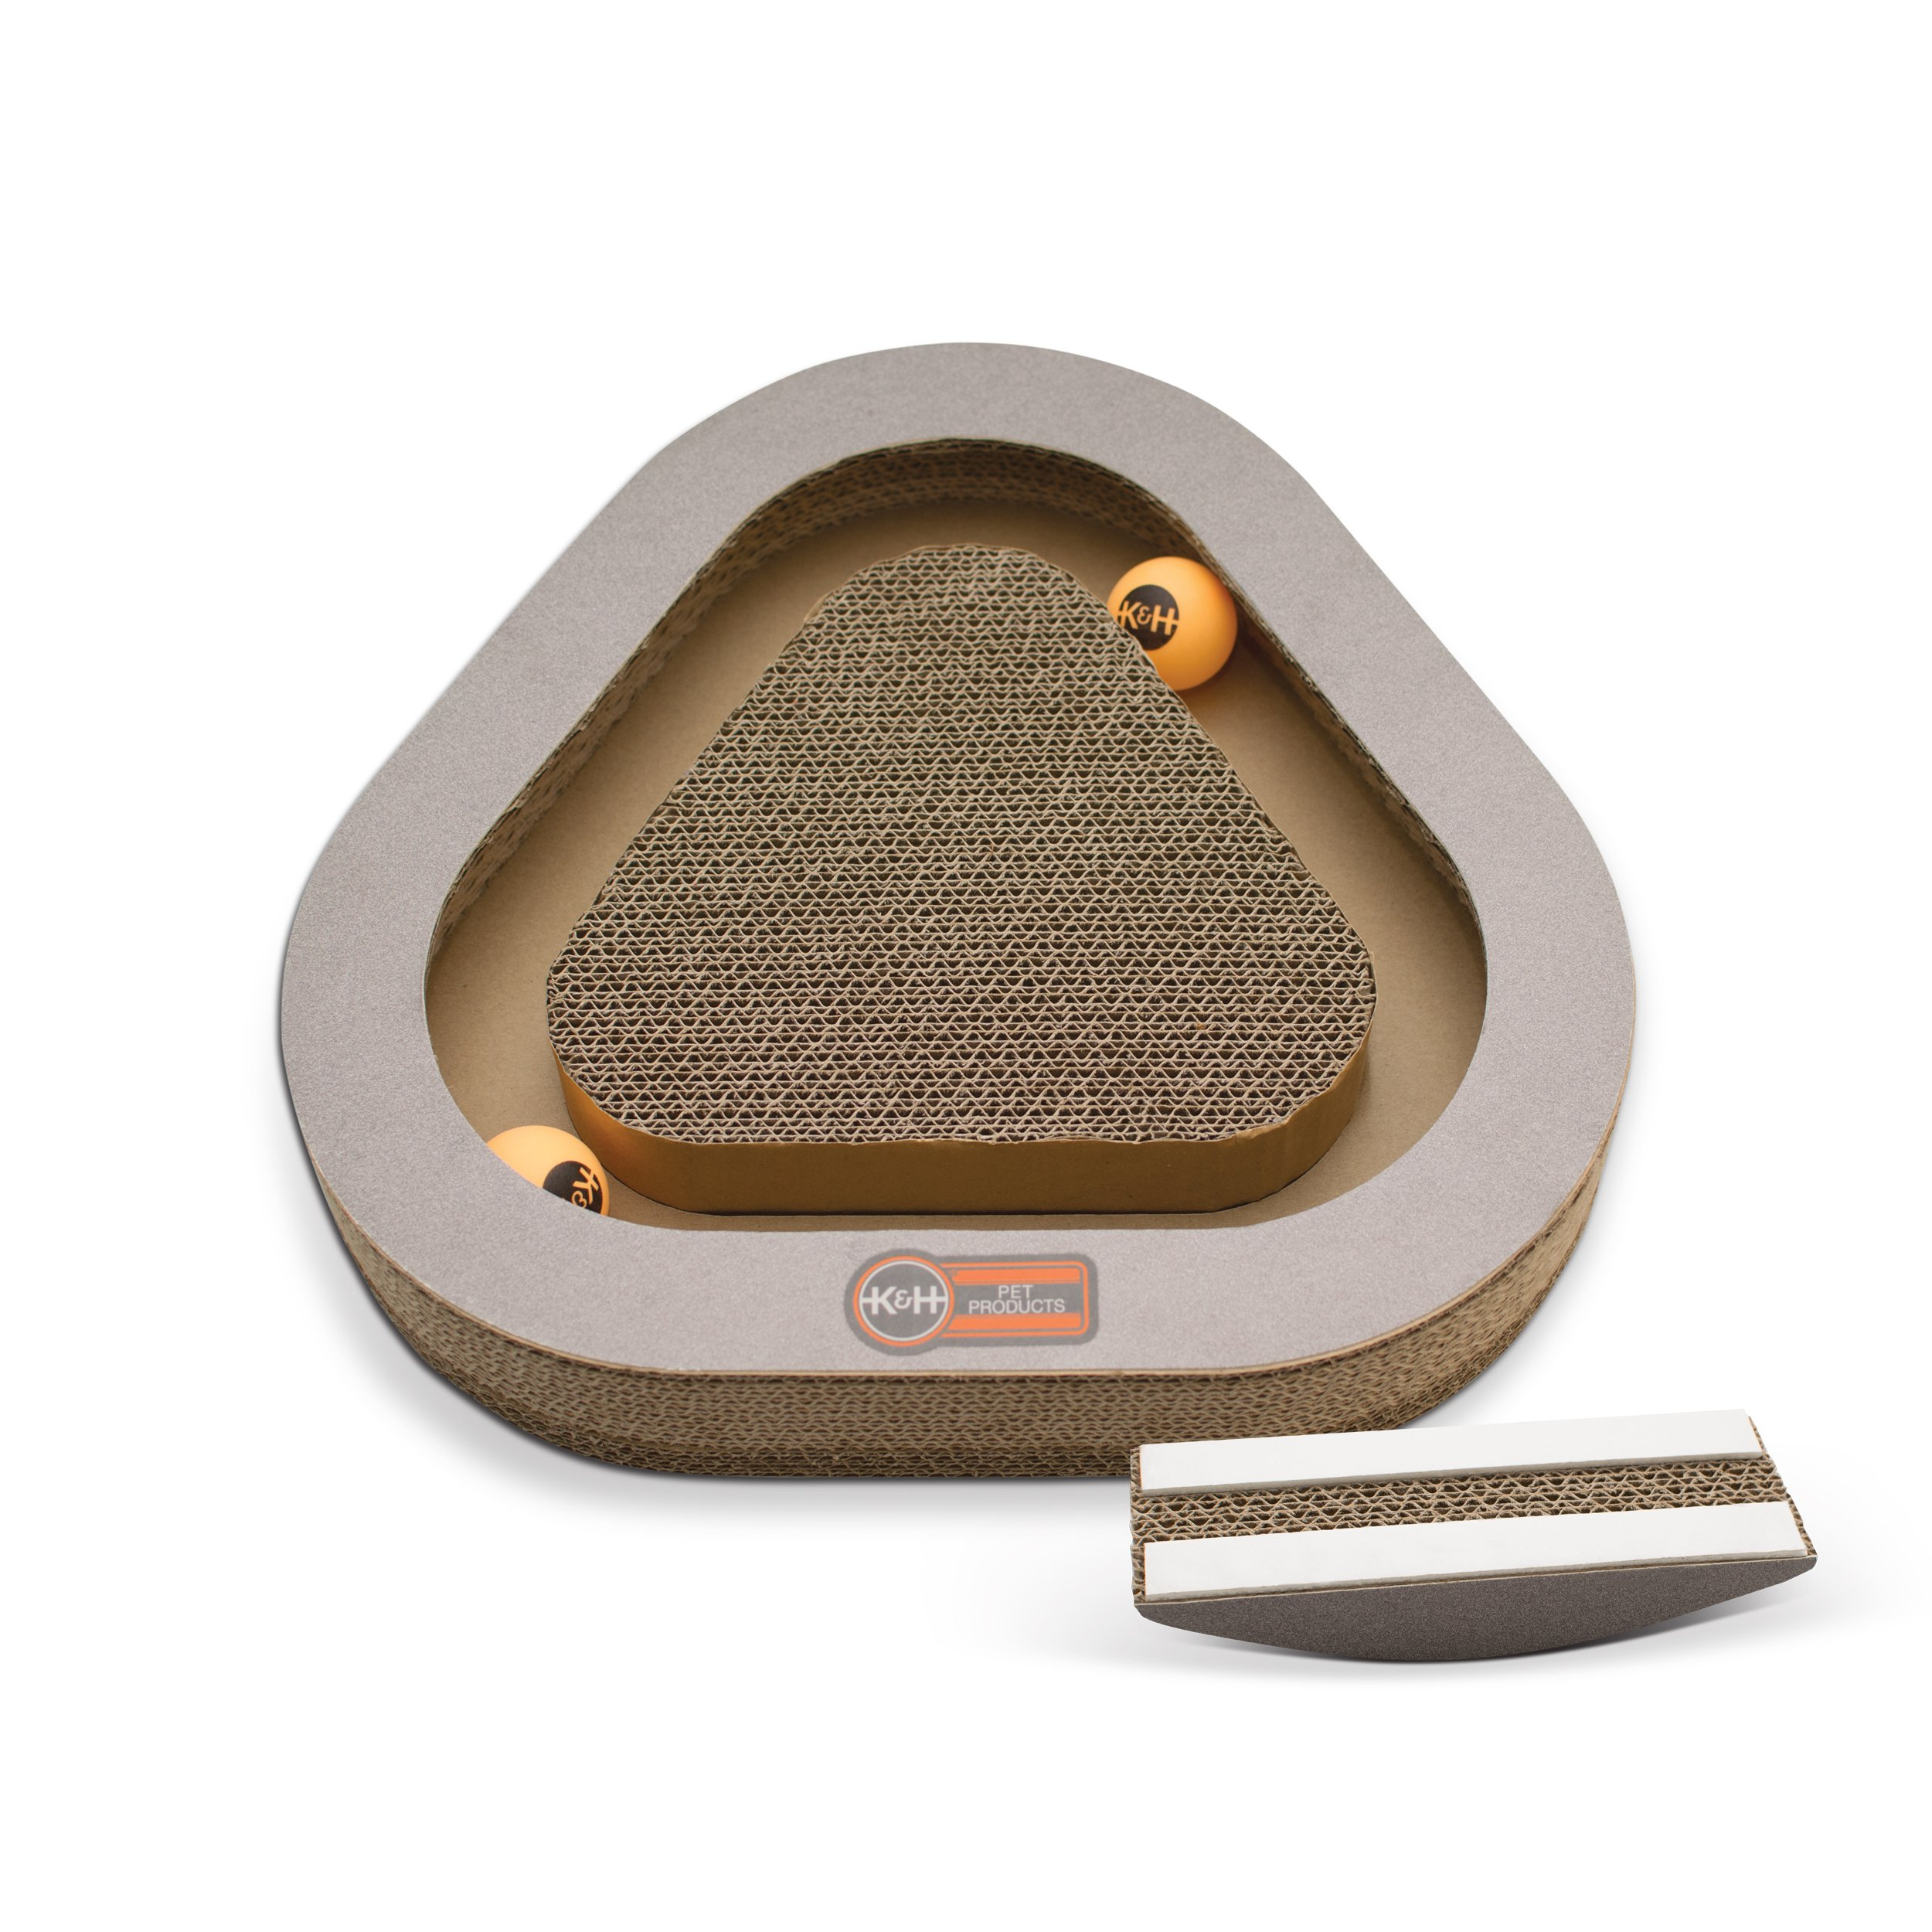 K&H PET Products Kitty Tippy Scratch n' Track Cardboard Cat Scratcher Interactive Toy